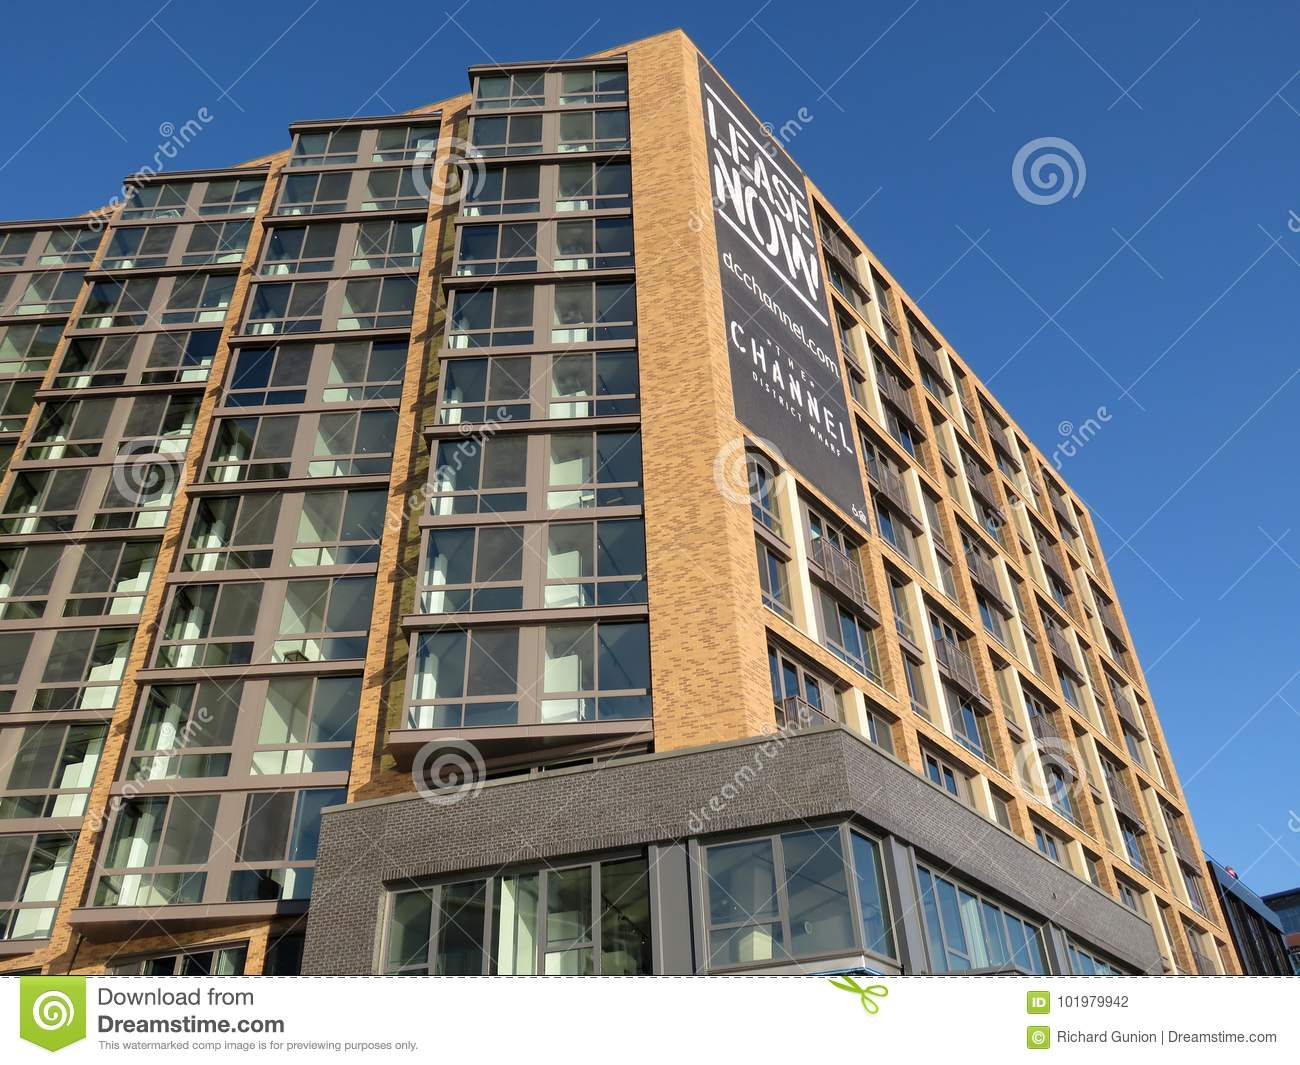 For Lease at the Wharf in Washington DC